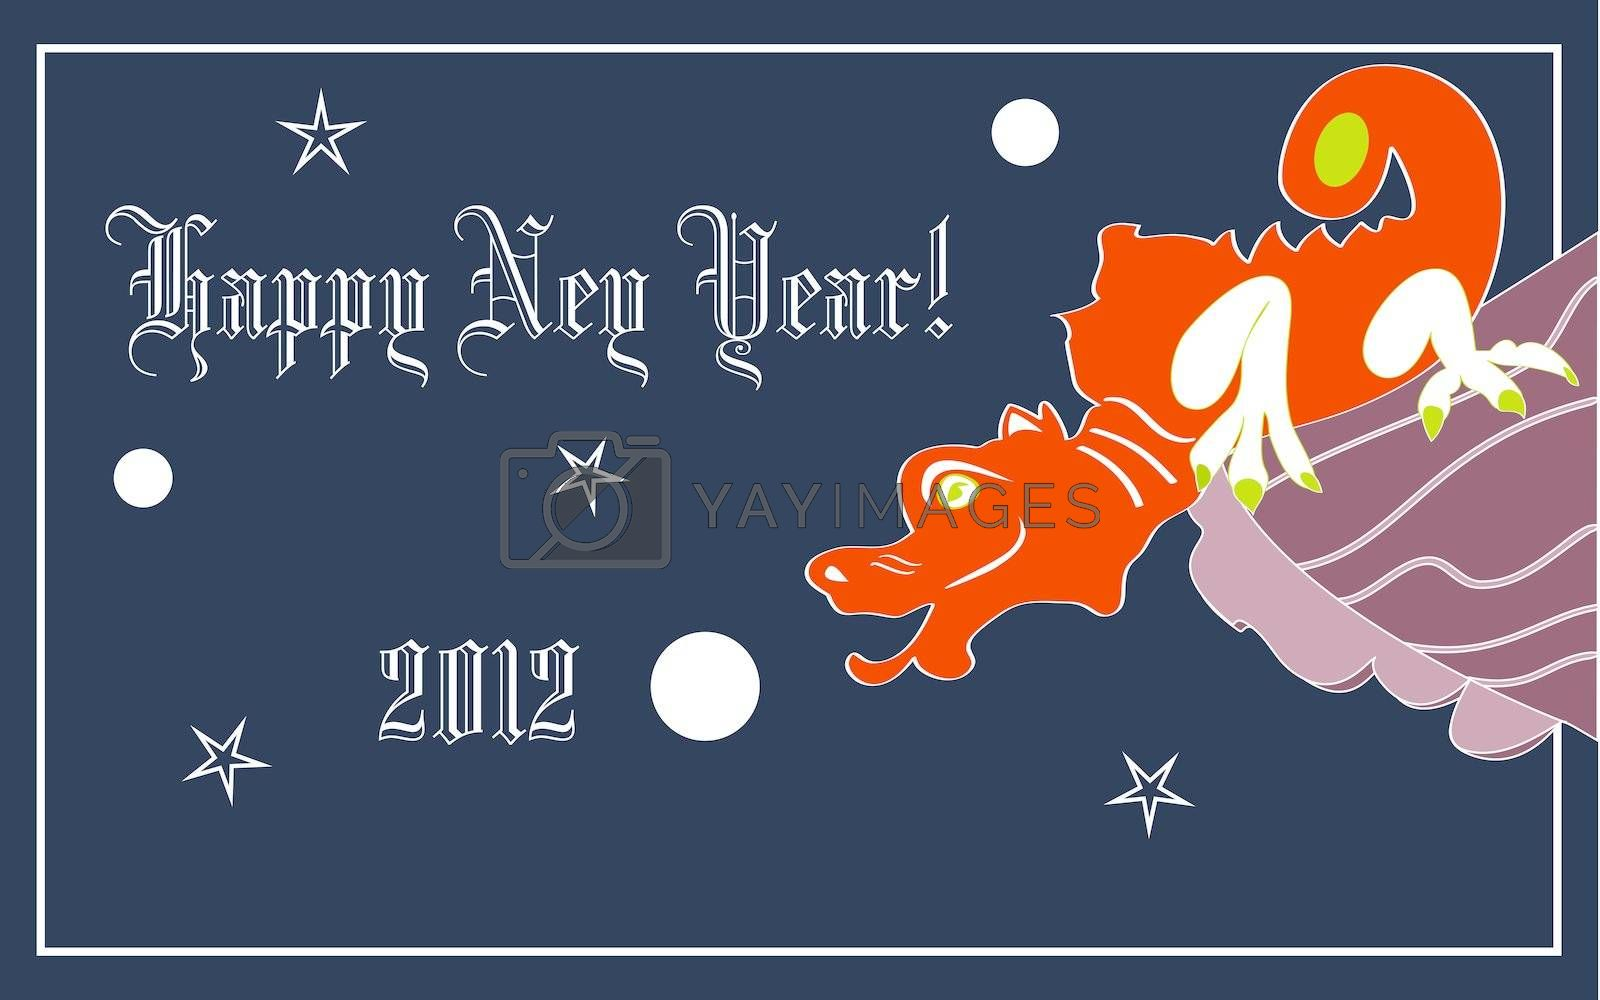 Red dragon, symbol of New Year 2012, sitting on the brown roof, on dark blue background with white balls and stars